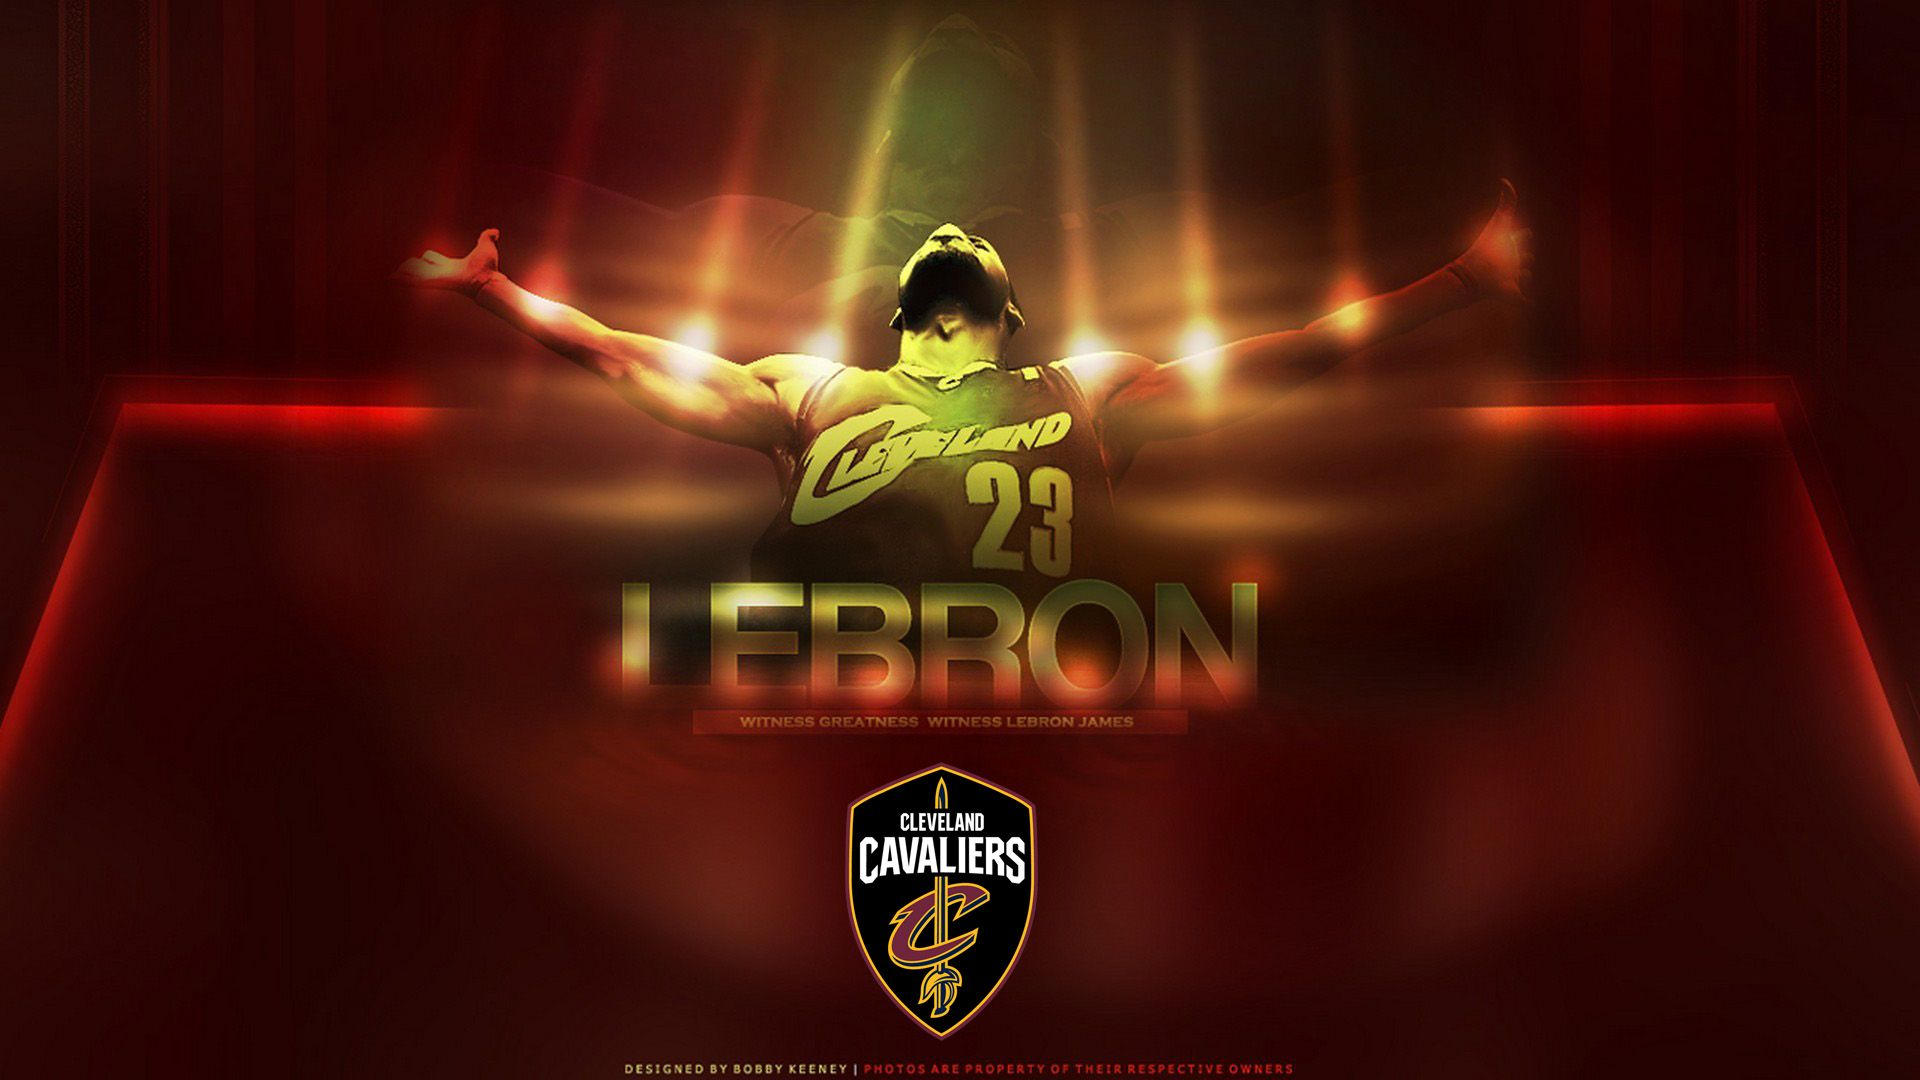 Simple Wallpaper Mac Lebron James - f6c31b29b99e5d4e255c629b5d994a52  Image_18762.jpg